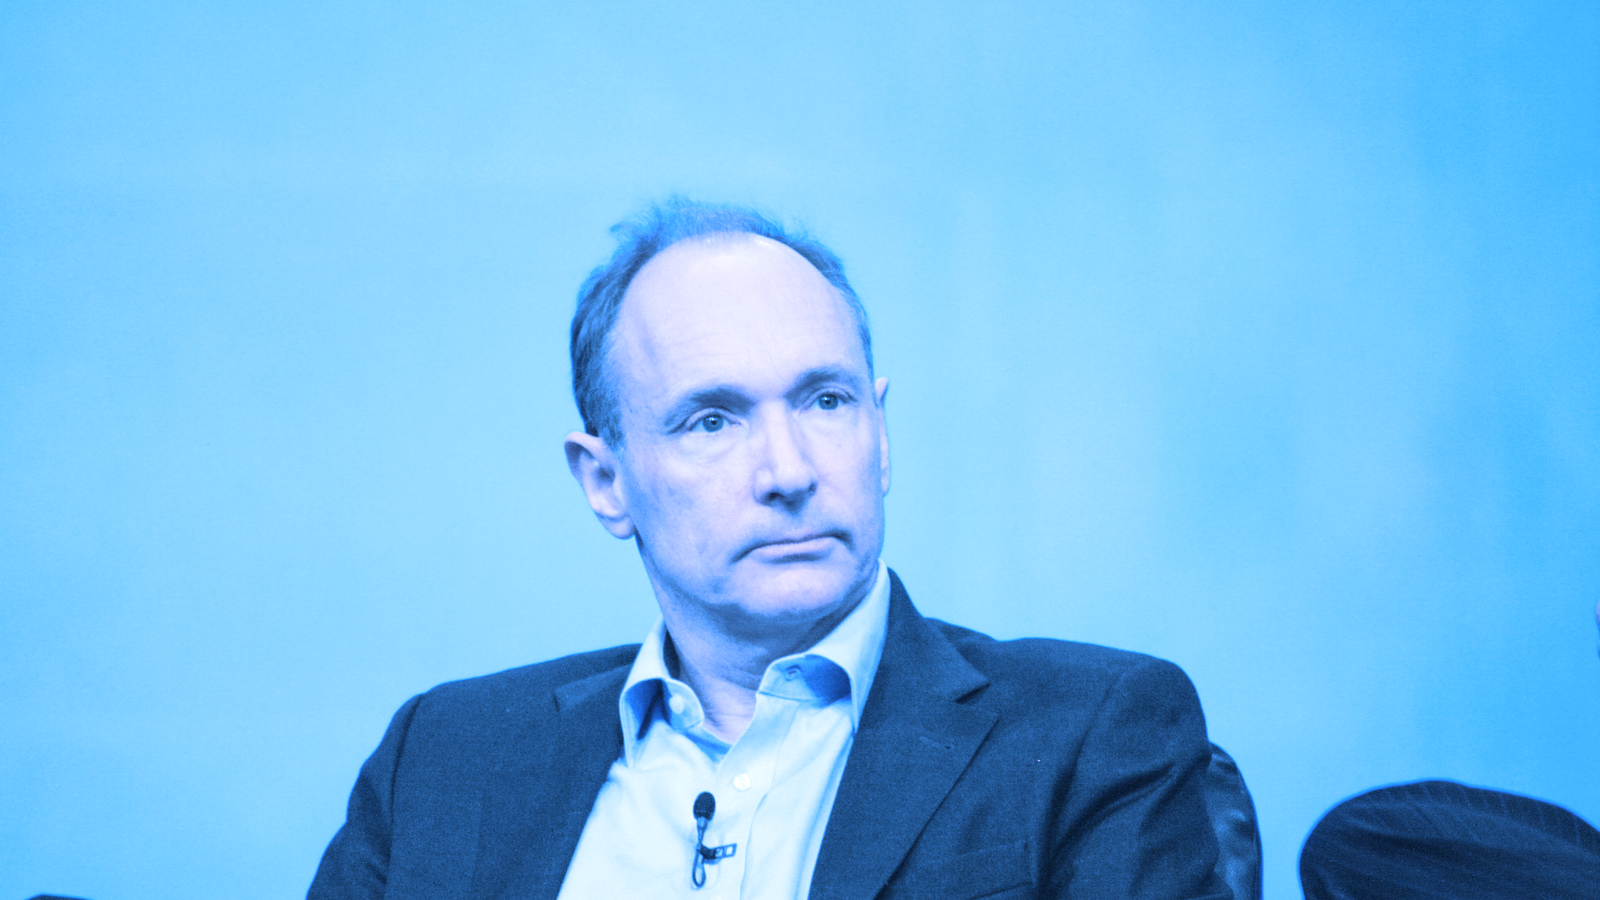 Tim Berners-Lee's World Wide Web Source Code to Be Immortalized as NFT